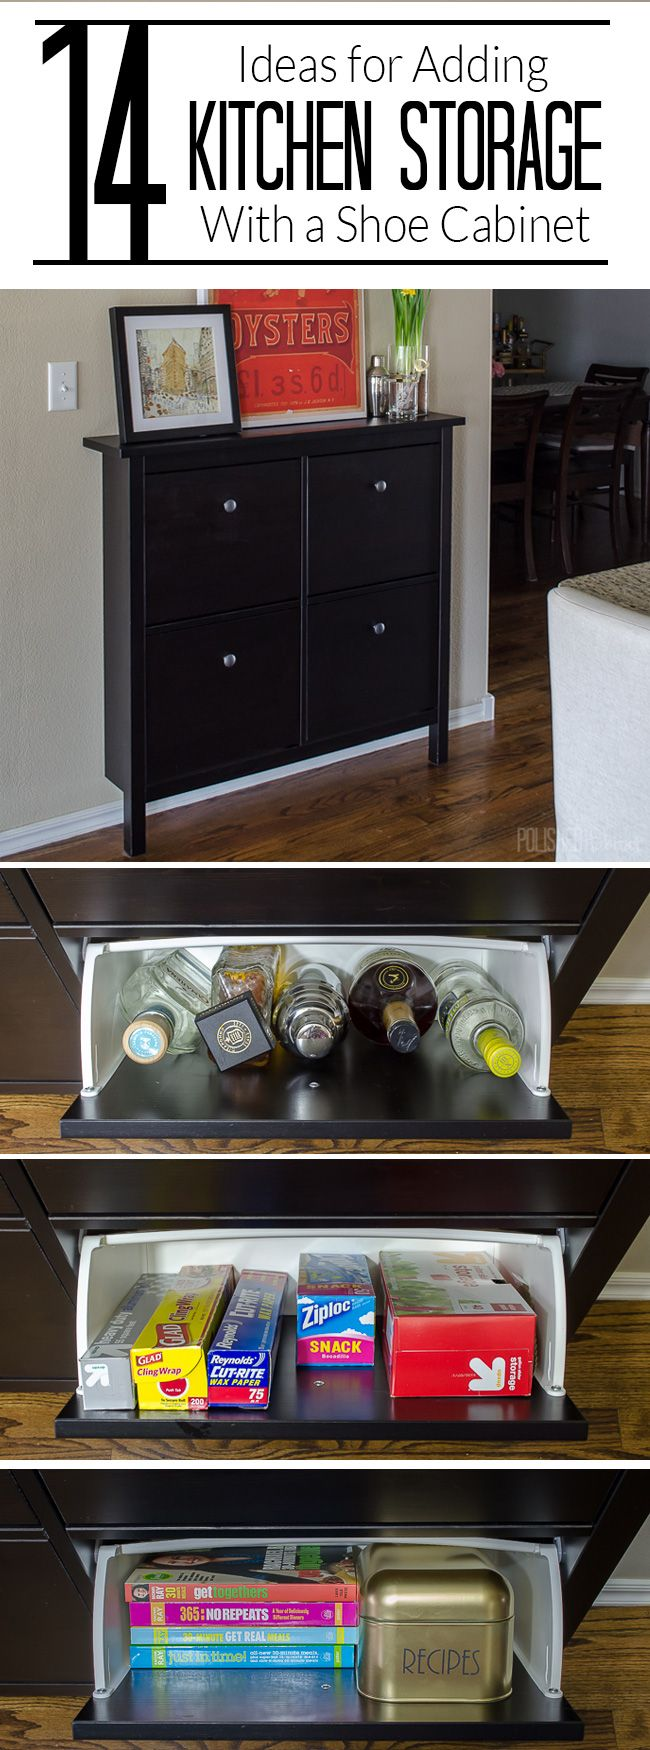 ikea kitchen organization ideas 14 ways to use an ikea shoe cabinet for kitchen 4553